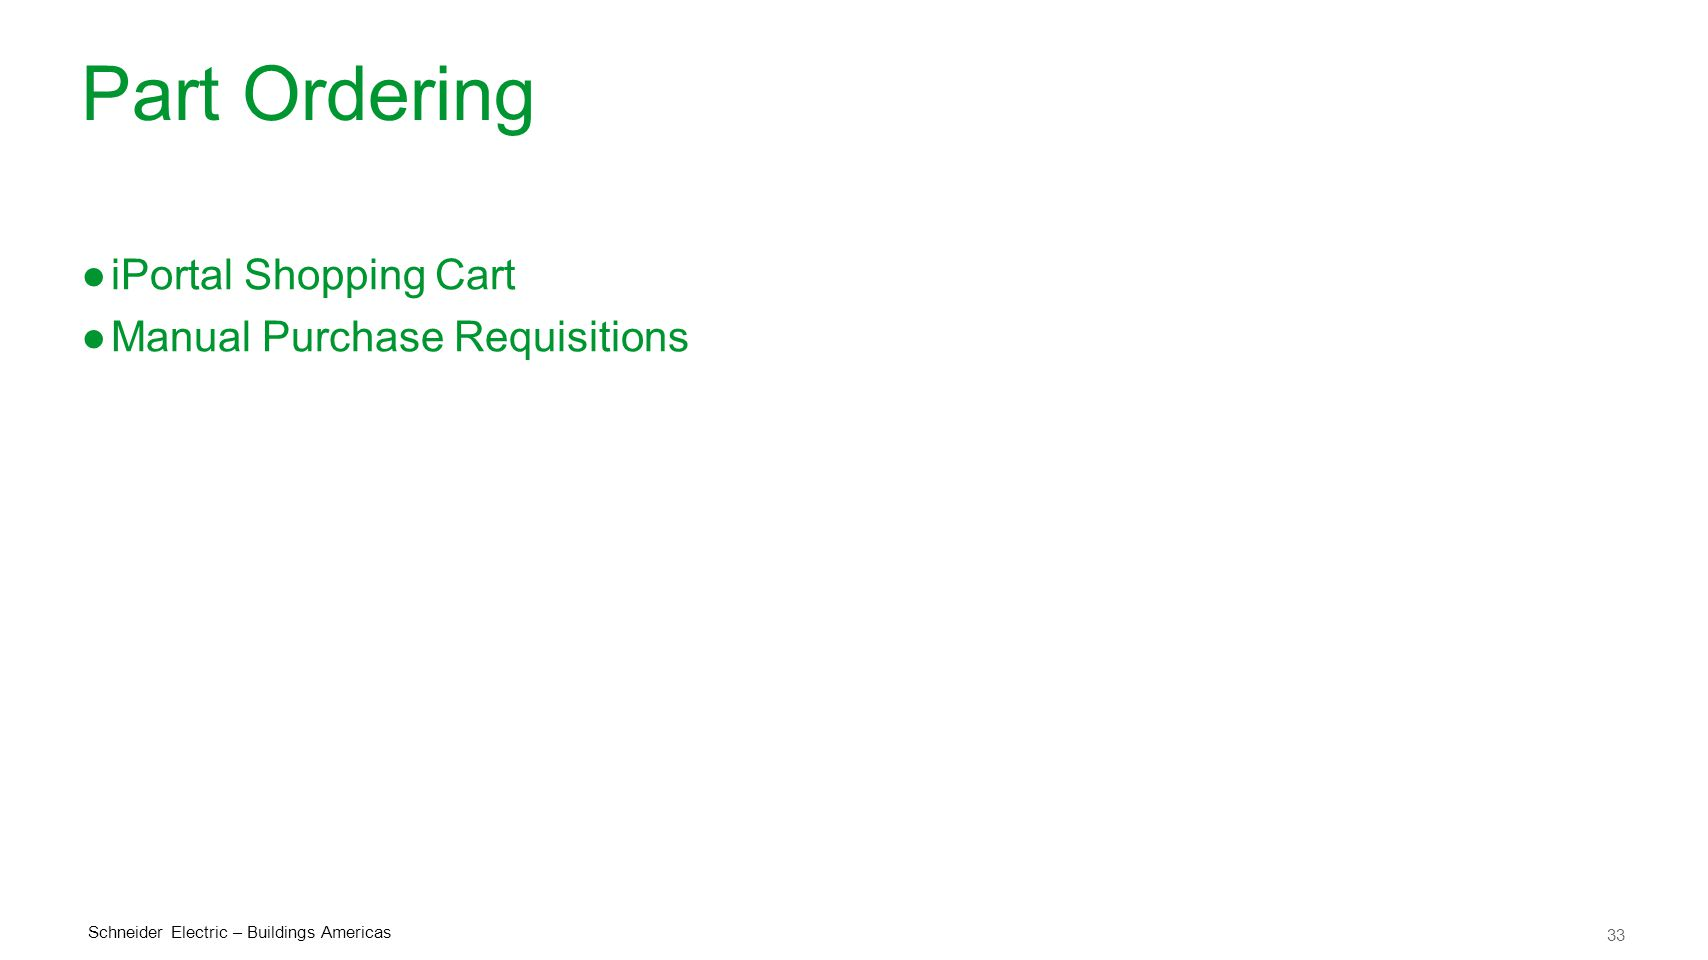 33 Schneider Electric – Buildings Americas Part Ordering ●iPortal Shopping Cart ●Manual Purchase Requisitions